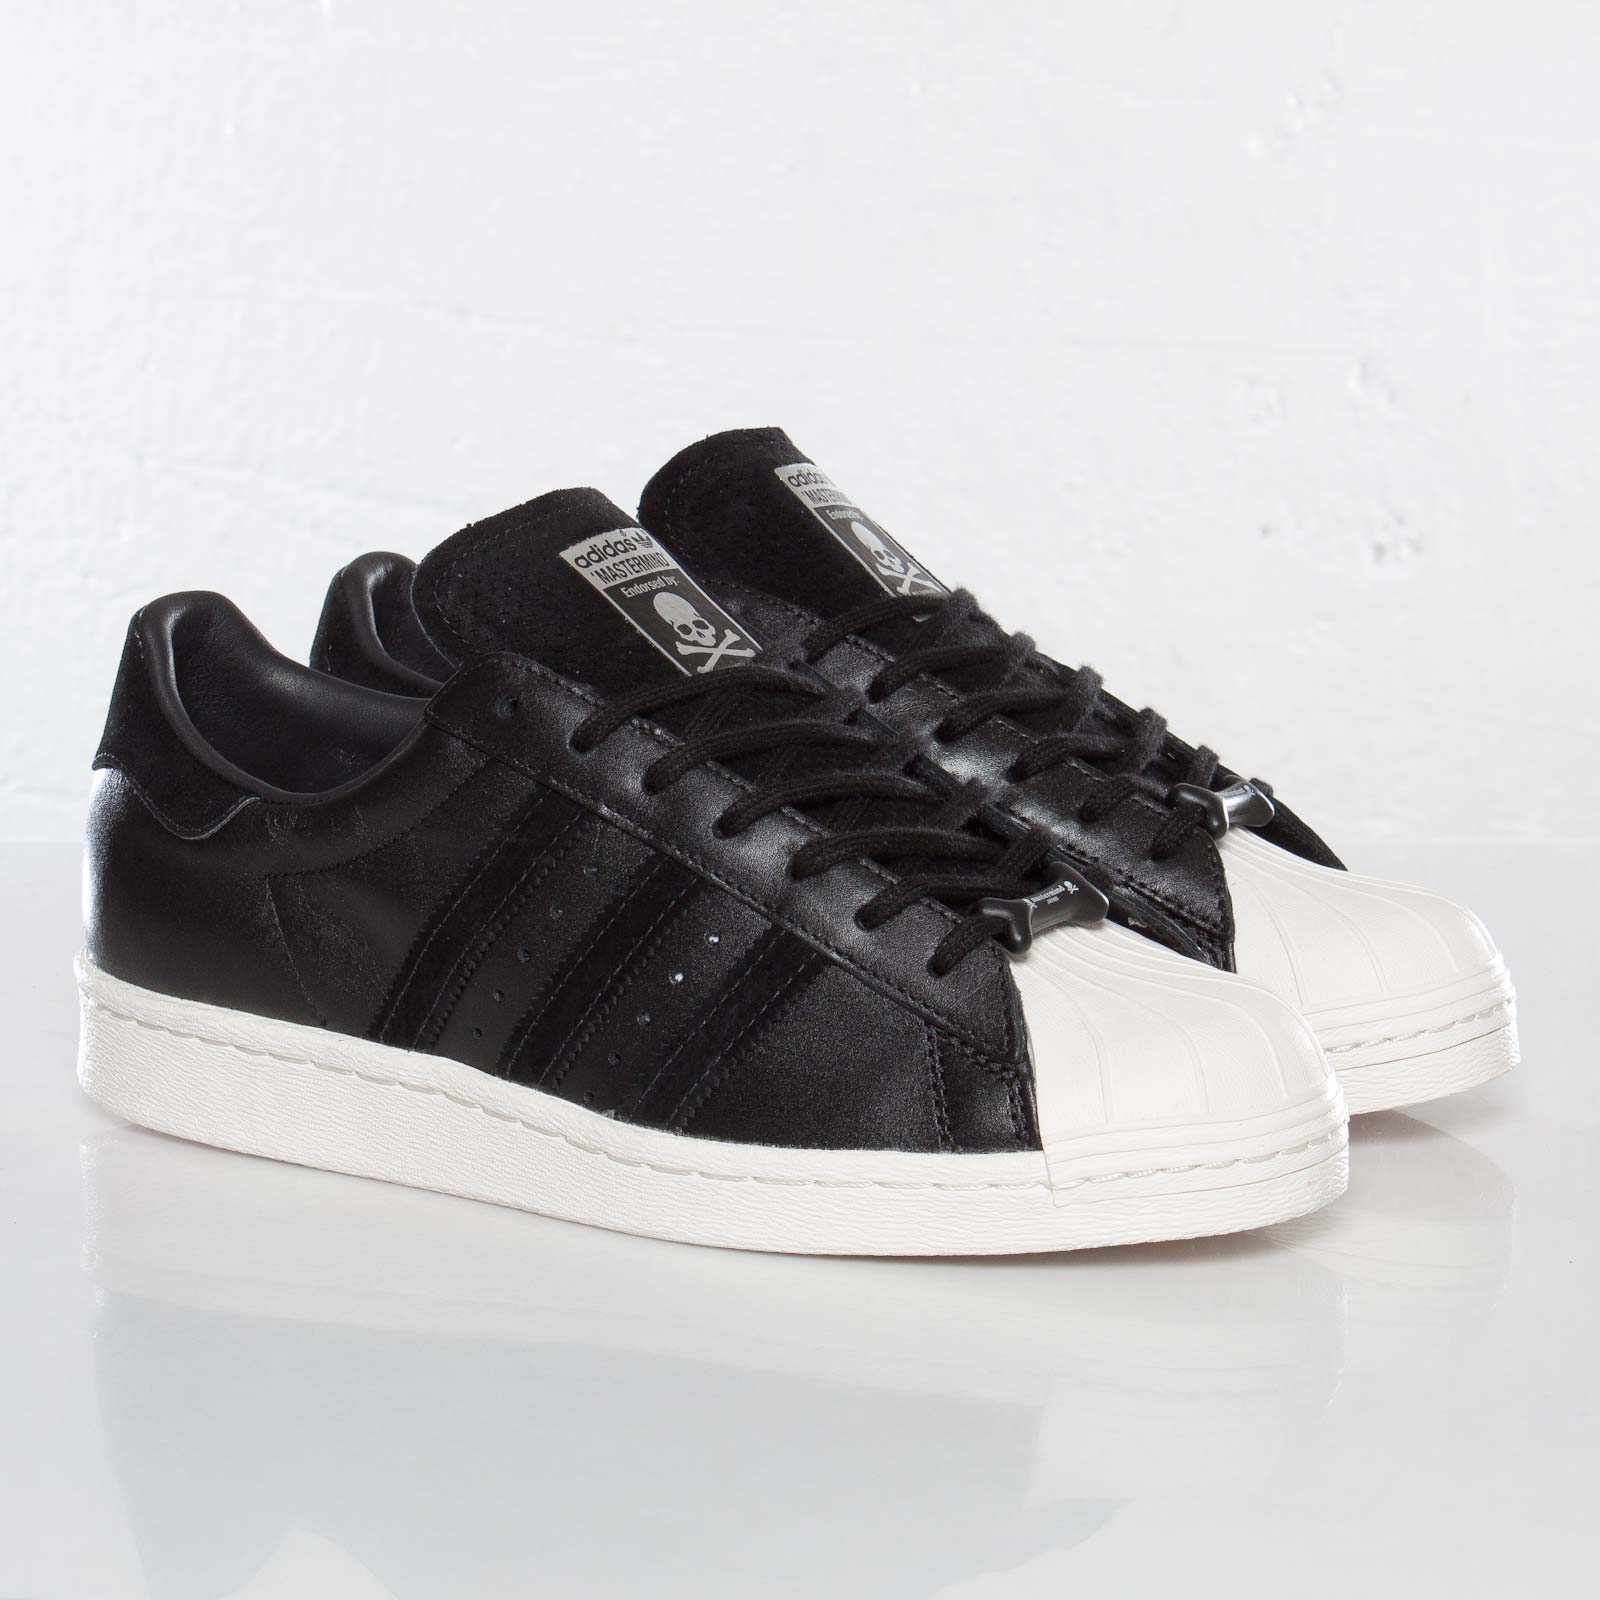 separation shoes a94a2 79525 adidas Superstar 80s - mastermind